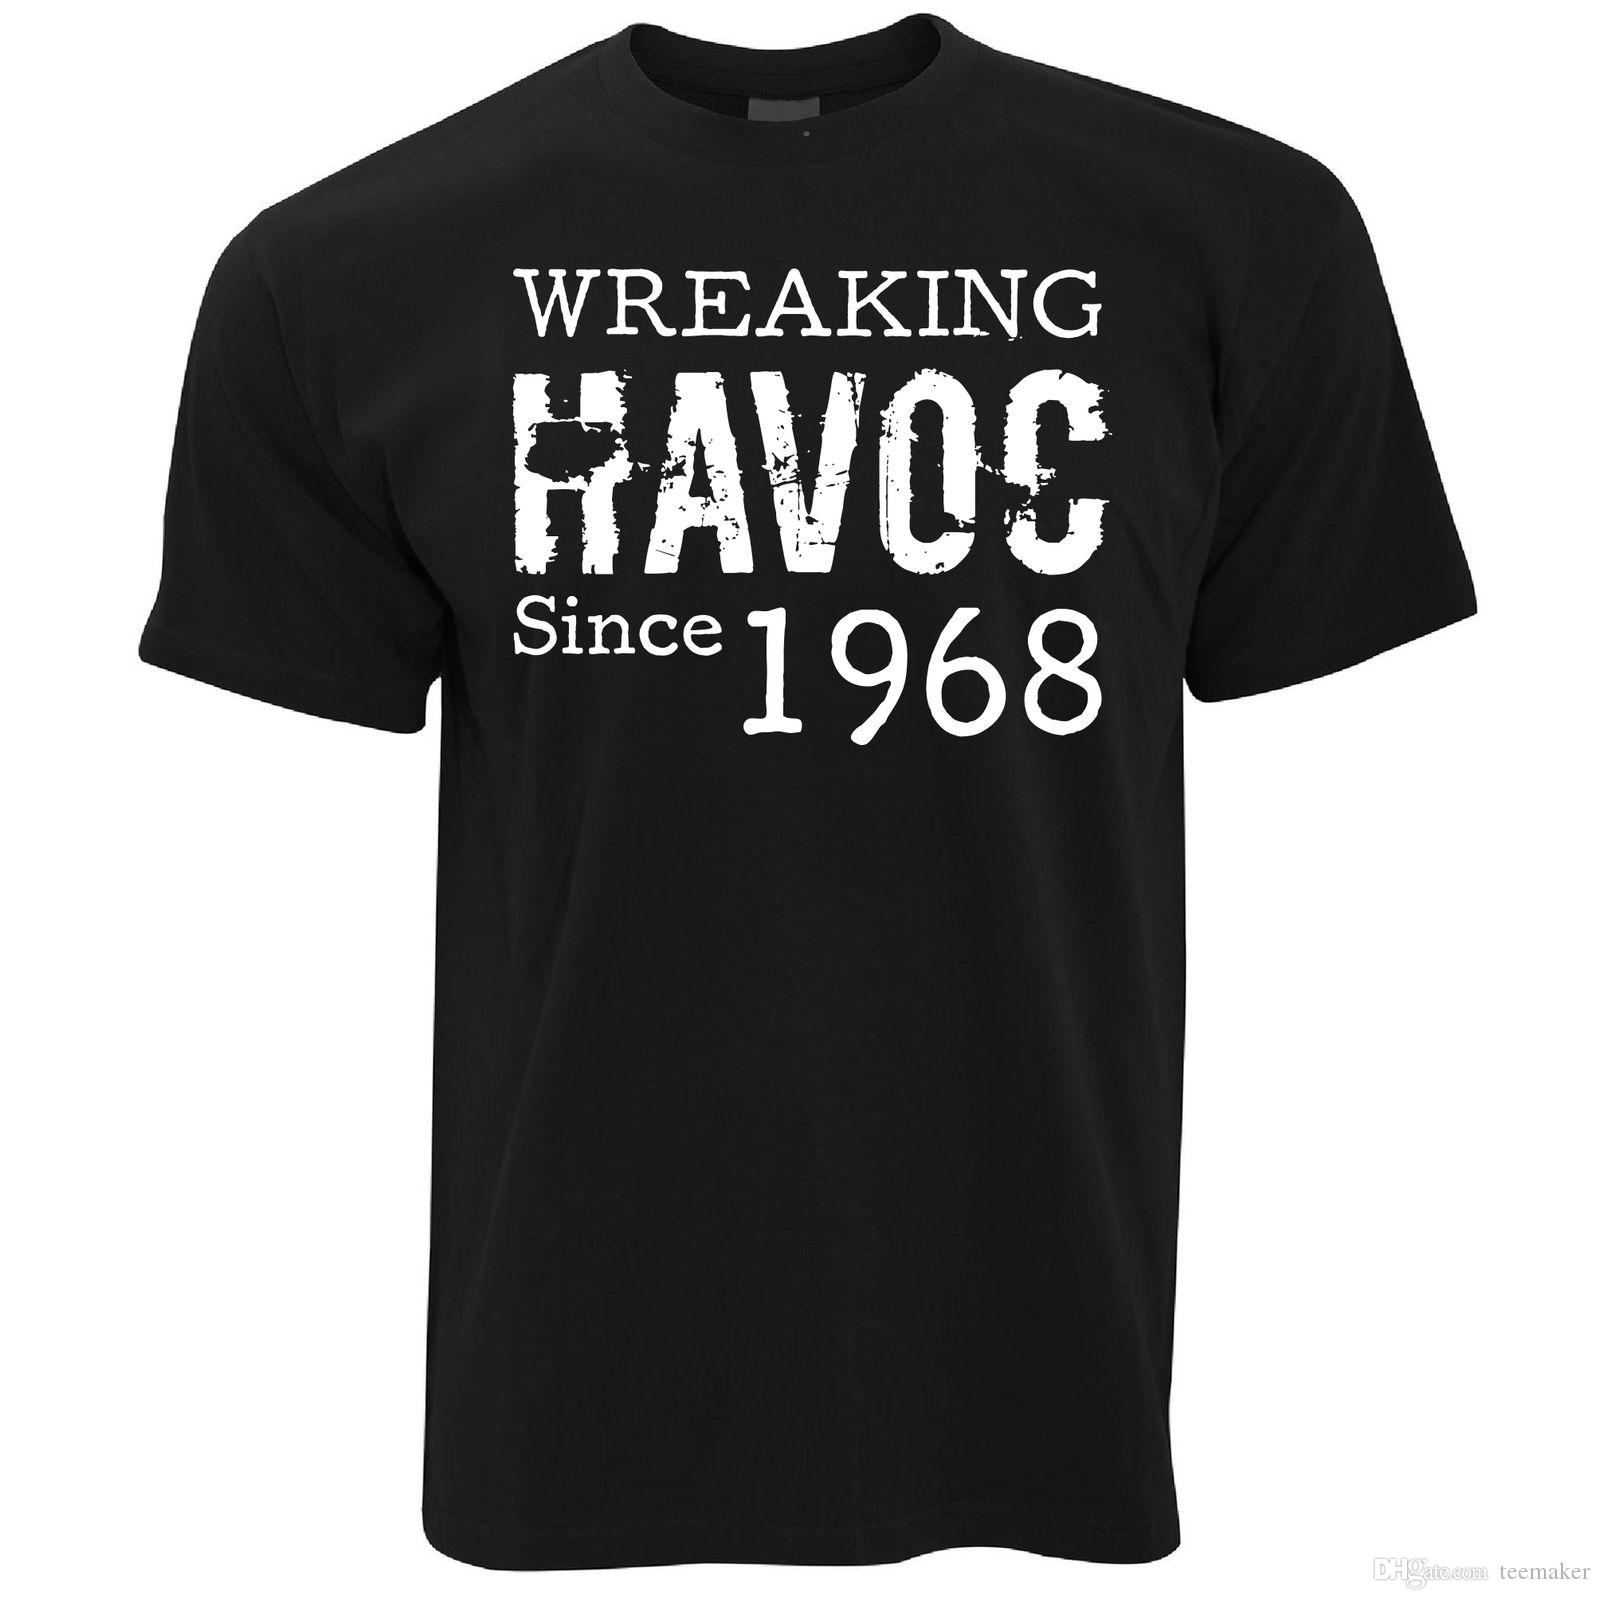 50th Birthday T Shirt Wreaking Havoc Since 1968 Gift Idea Tees MenS Design Custom Short Sleeve 3XL Couple Shirts One Tee A Day Random Graphic